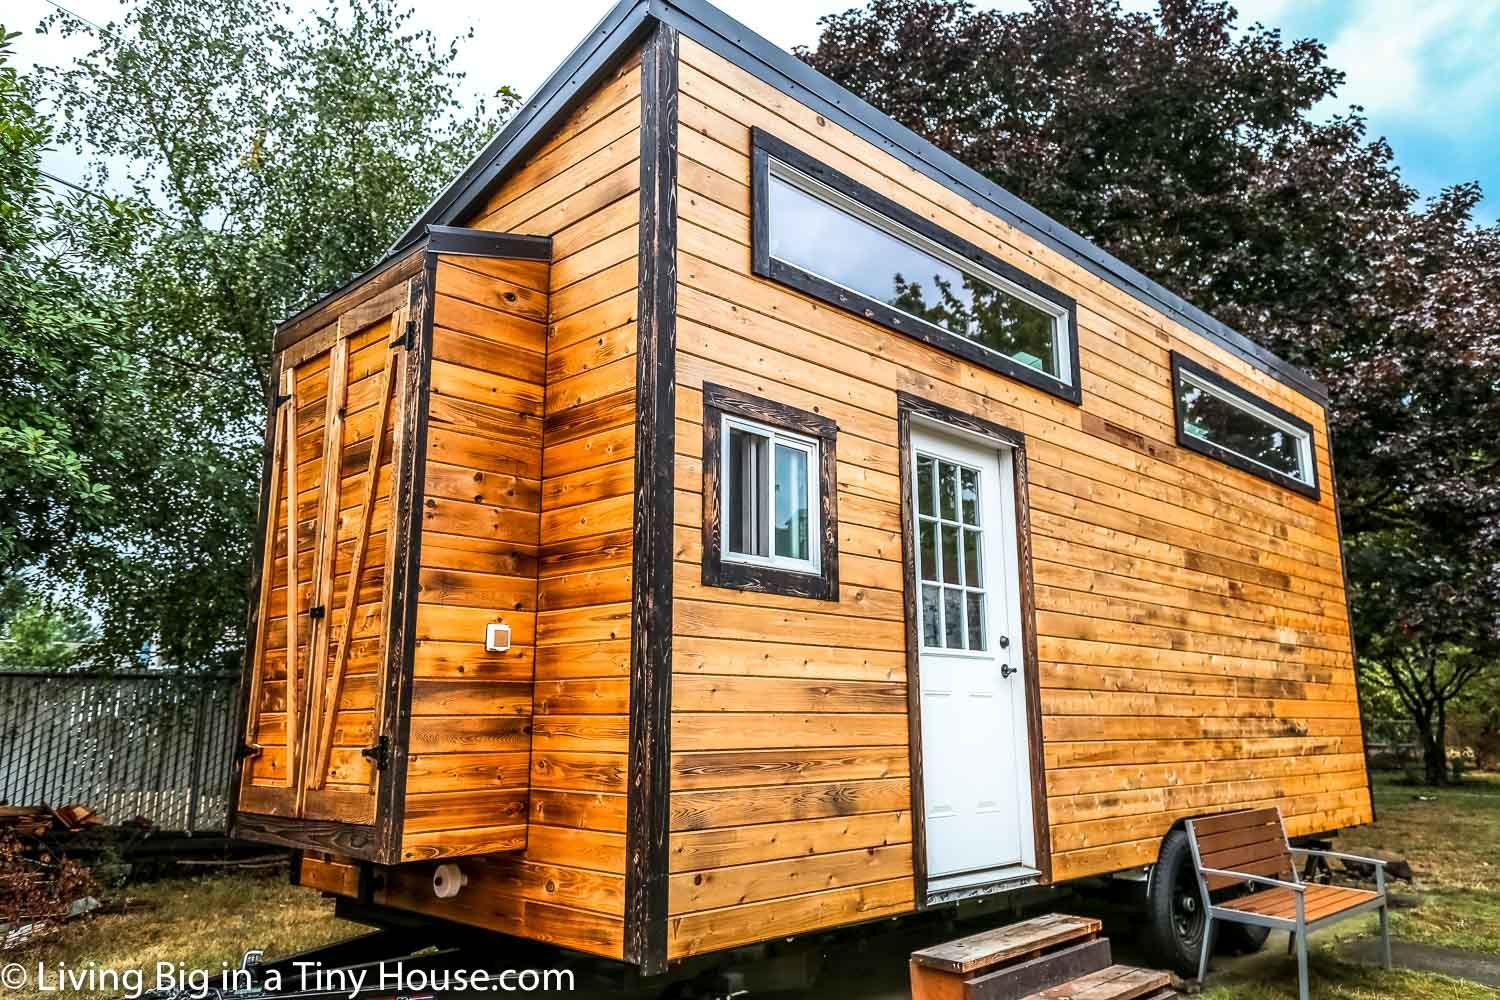 This Home Is The Cross Between A Tiny House On Wheels And A Kid S Dream Fort The Entire Open Area Betw Tiny Houses For Rent Diy Tiny House Tiny House Builders